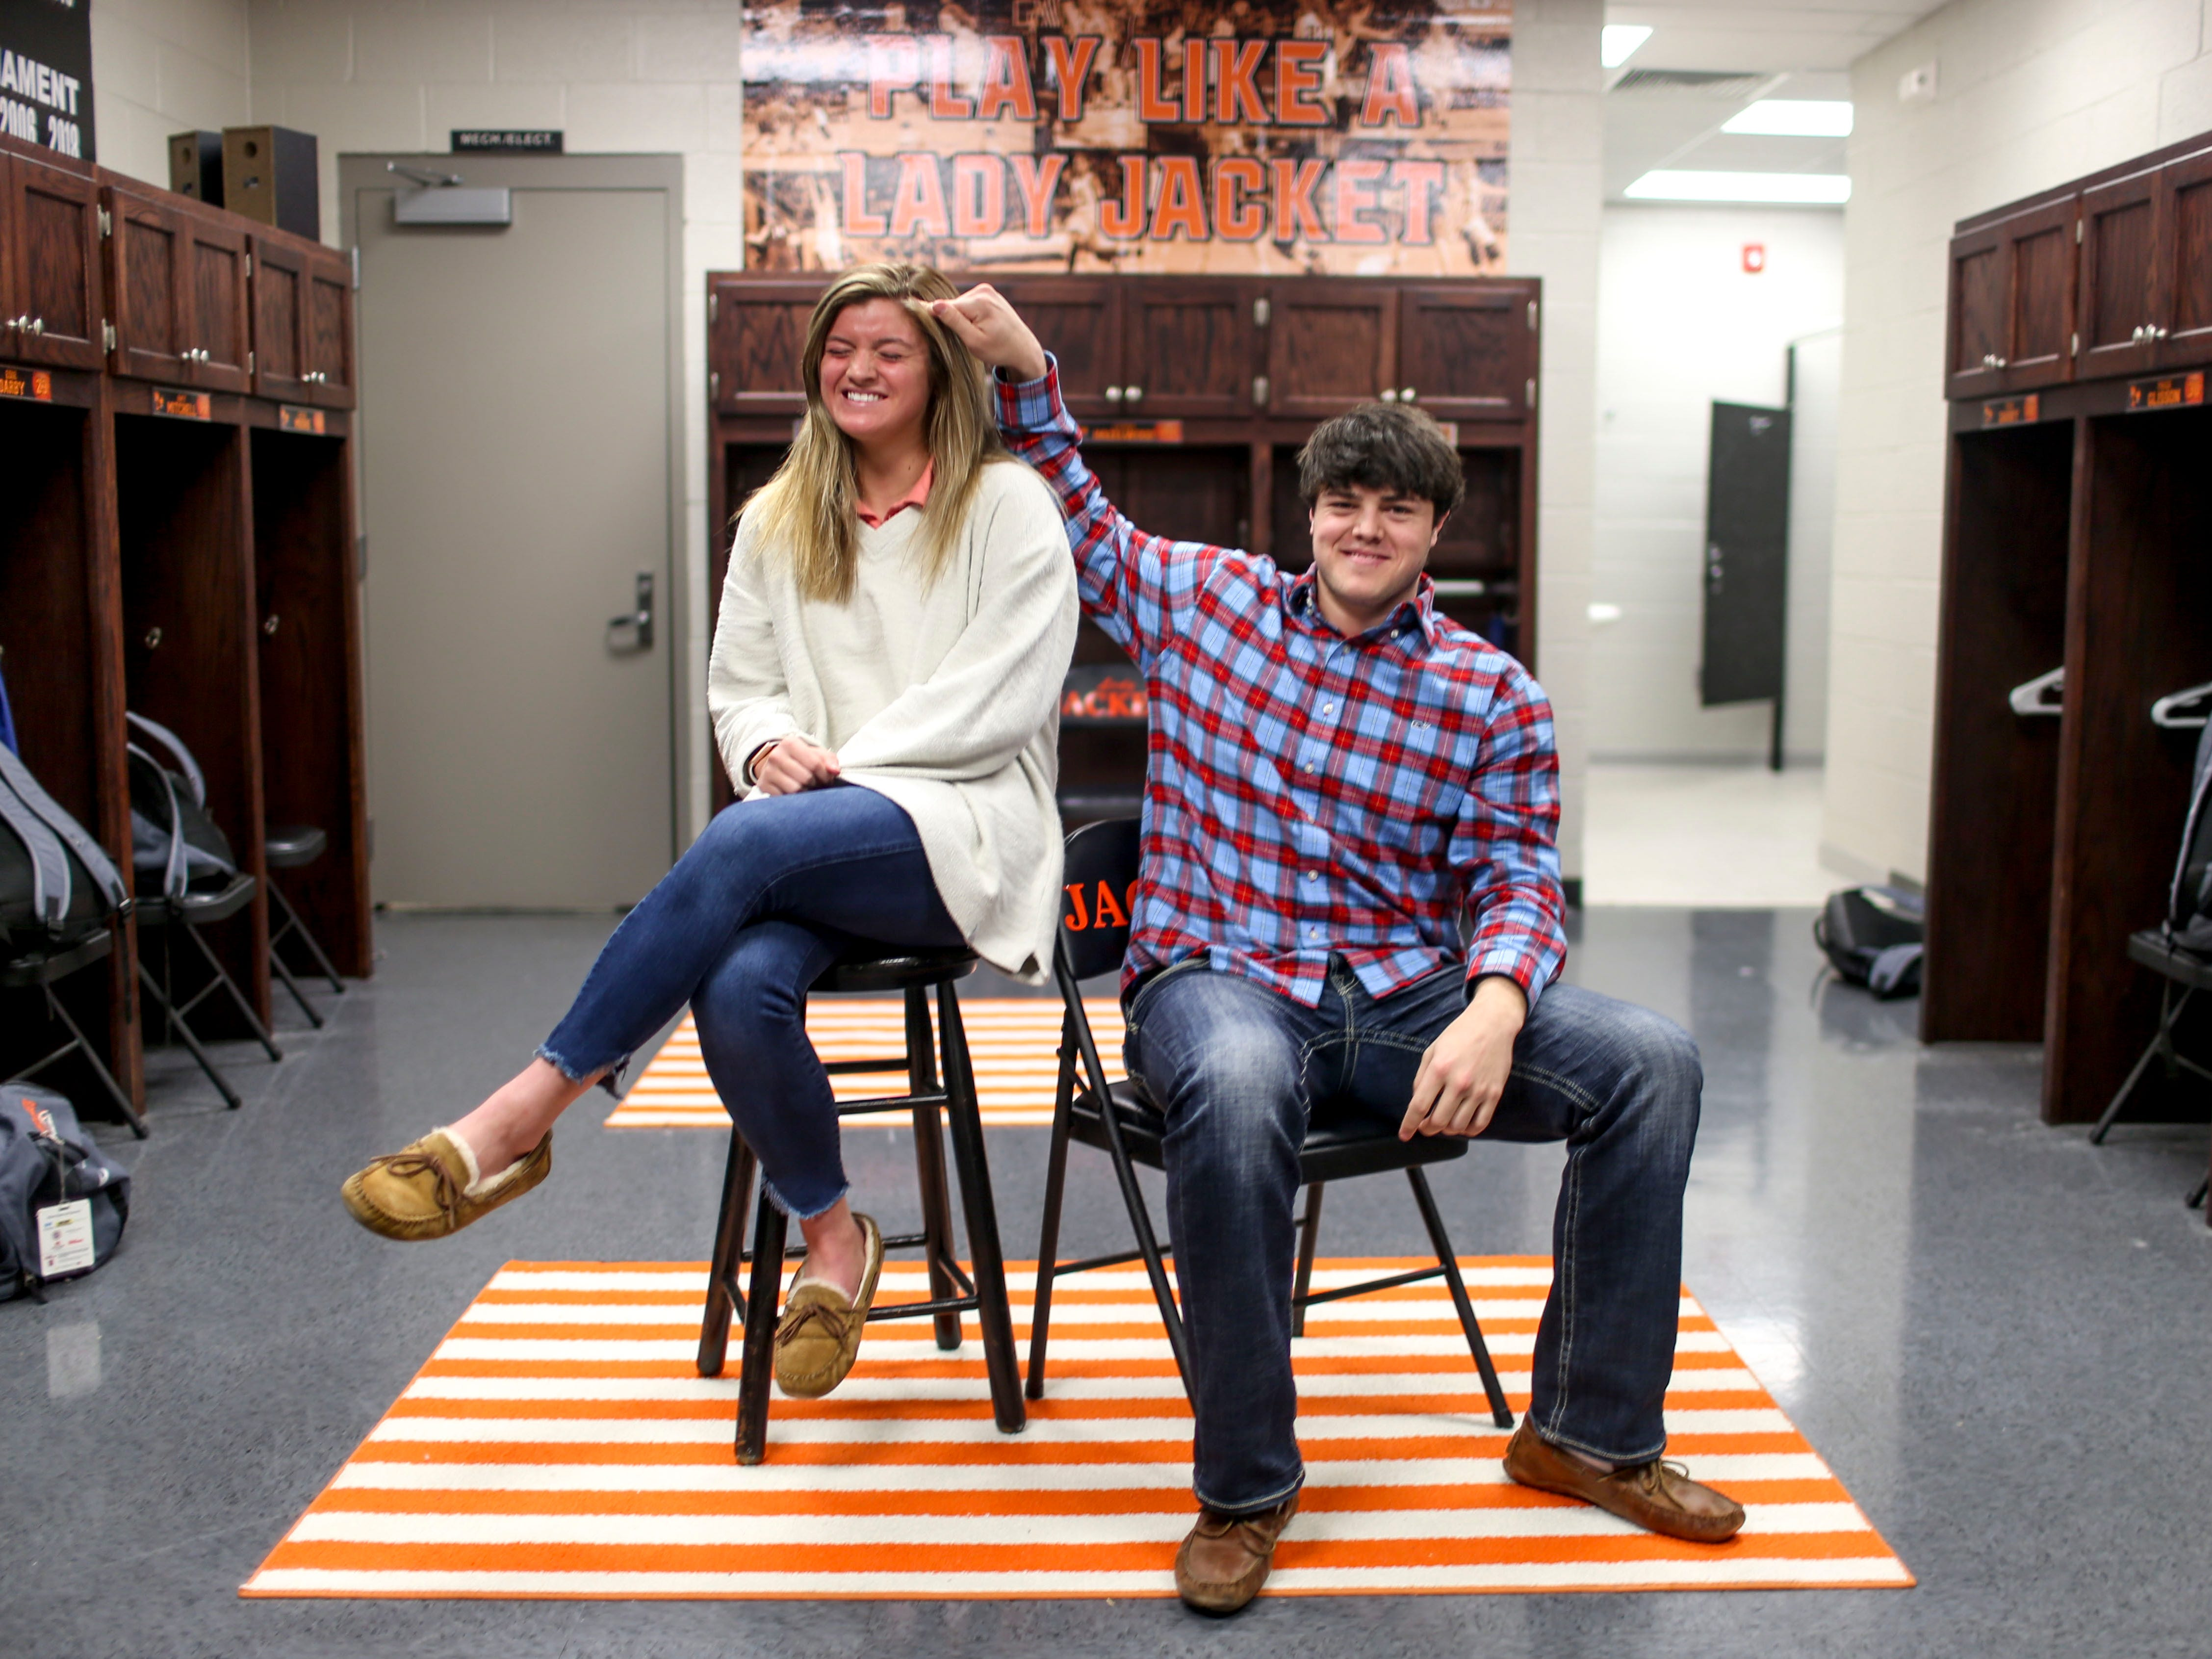 Caroline Crouse, left, and Jackson Crouse, right, siblings that both play on their respective varsity basketball teams and have had cochlear implants since a young age, sit for a portrait together in the locker room at Greenfield School in Greenfield, Tenn., on Thursday, Jan. 24, 2019.